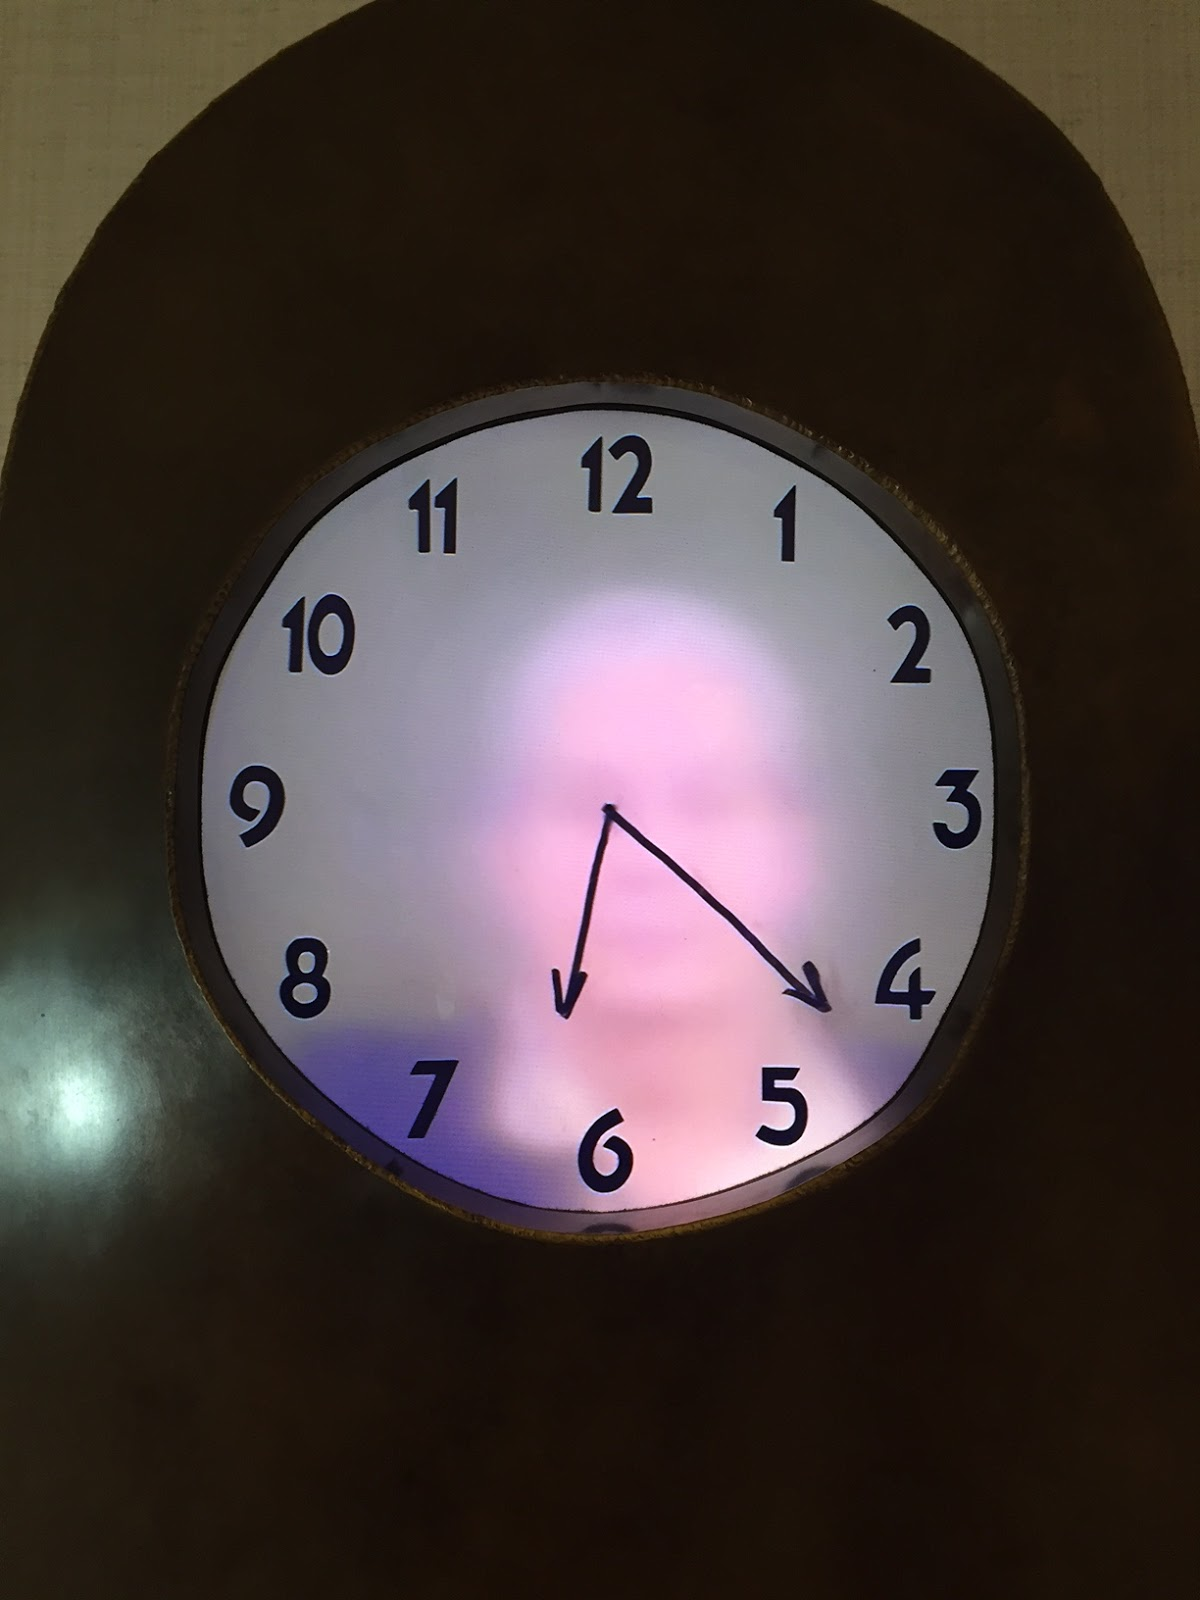 as we stood in silence observing this interactive grandmother clock i was compelled to look behind the clock to believe what i was seeing